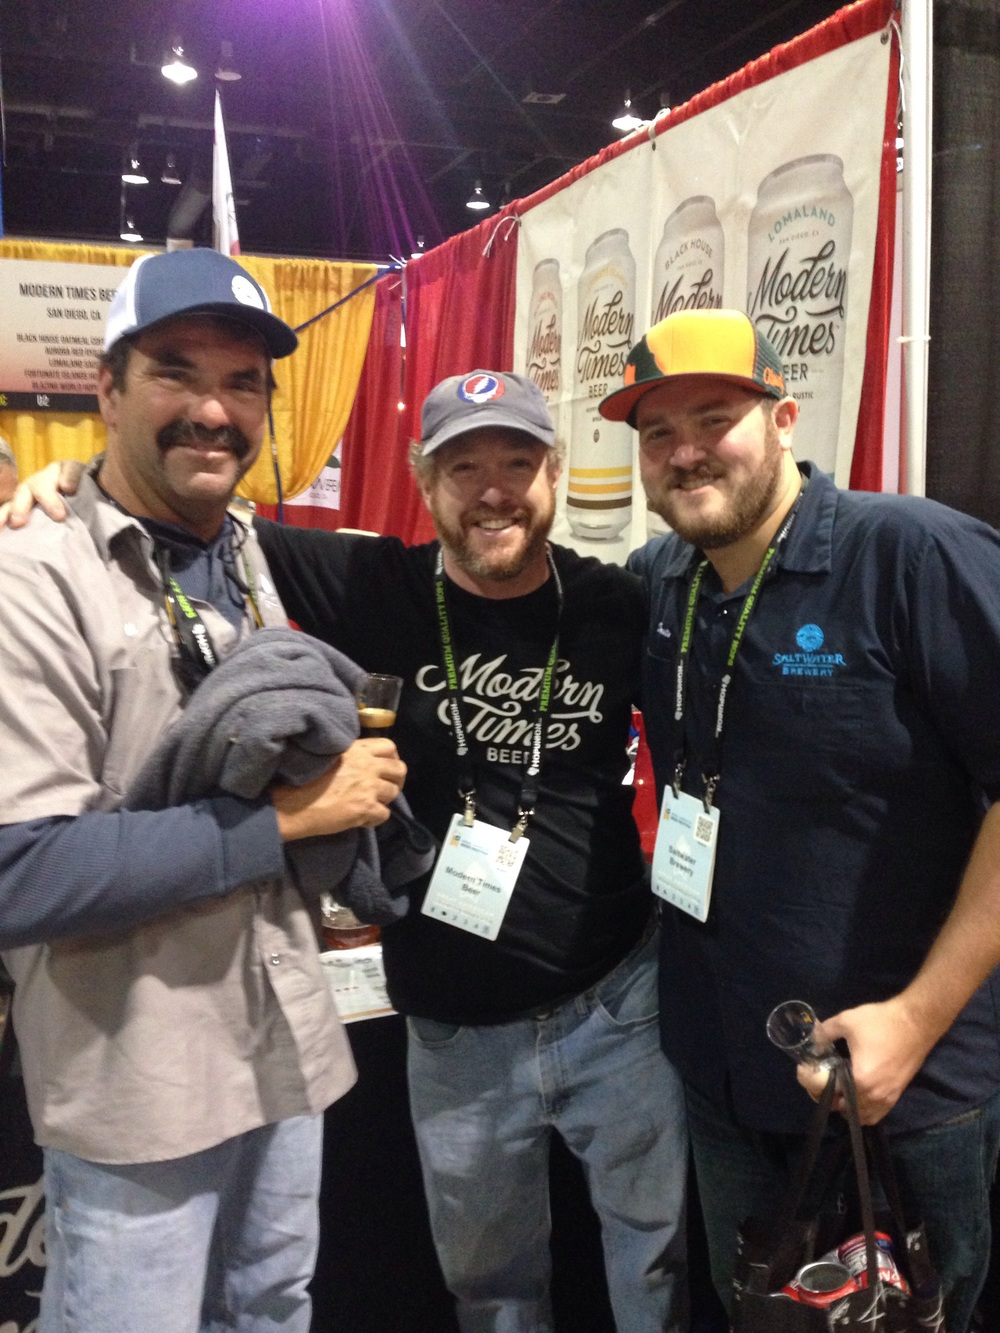 Bill, Dustin, and Brendan from Modern Times